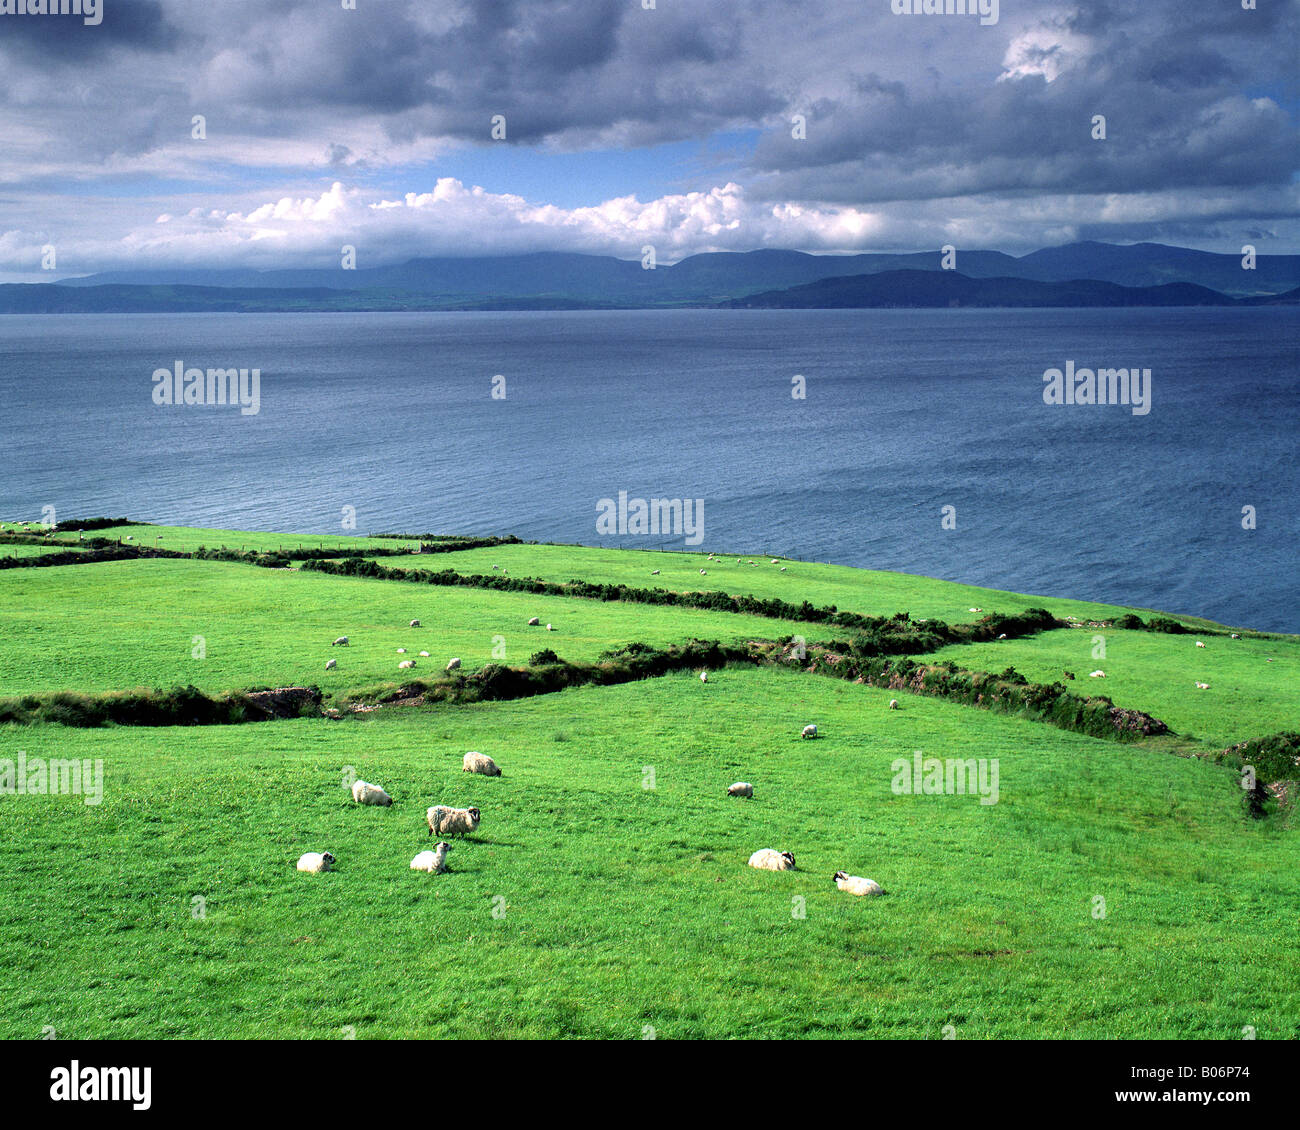 IE - CO.KERRY: Coastline along Ring of Kerry - Stock Image